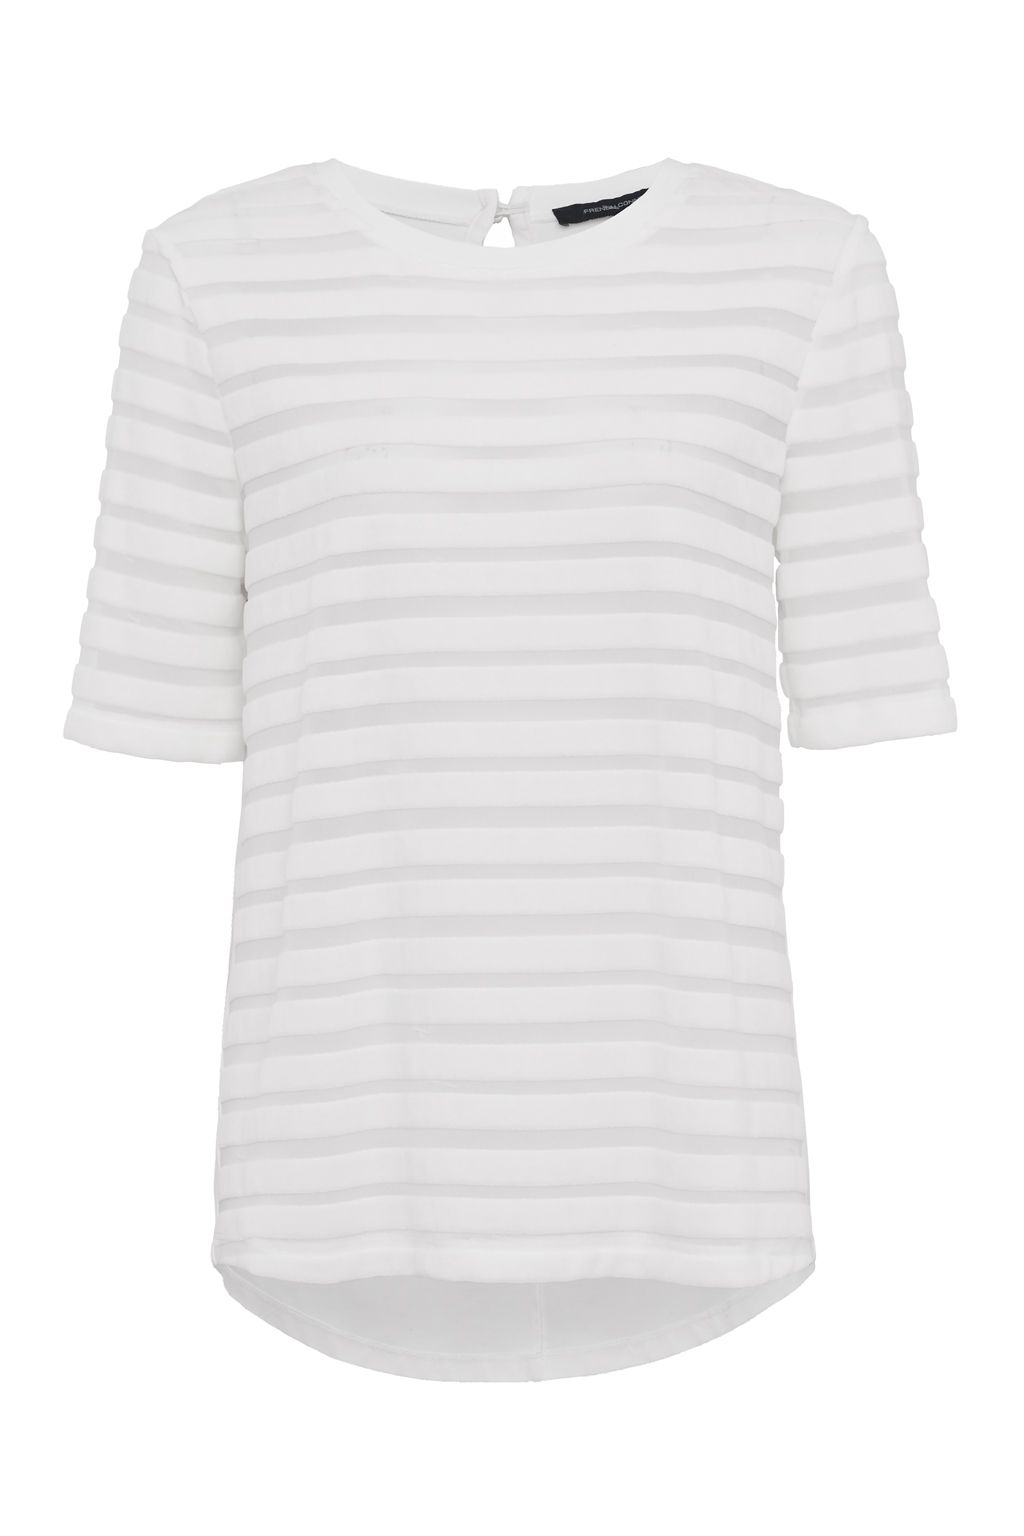 French Connection Bernice Velvet Striped Jersey T-shirt, Winter White